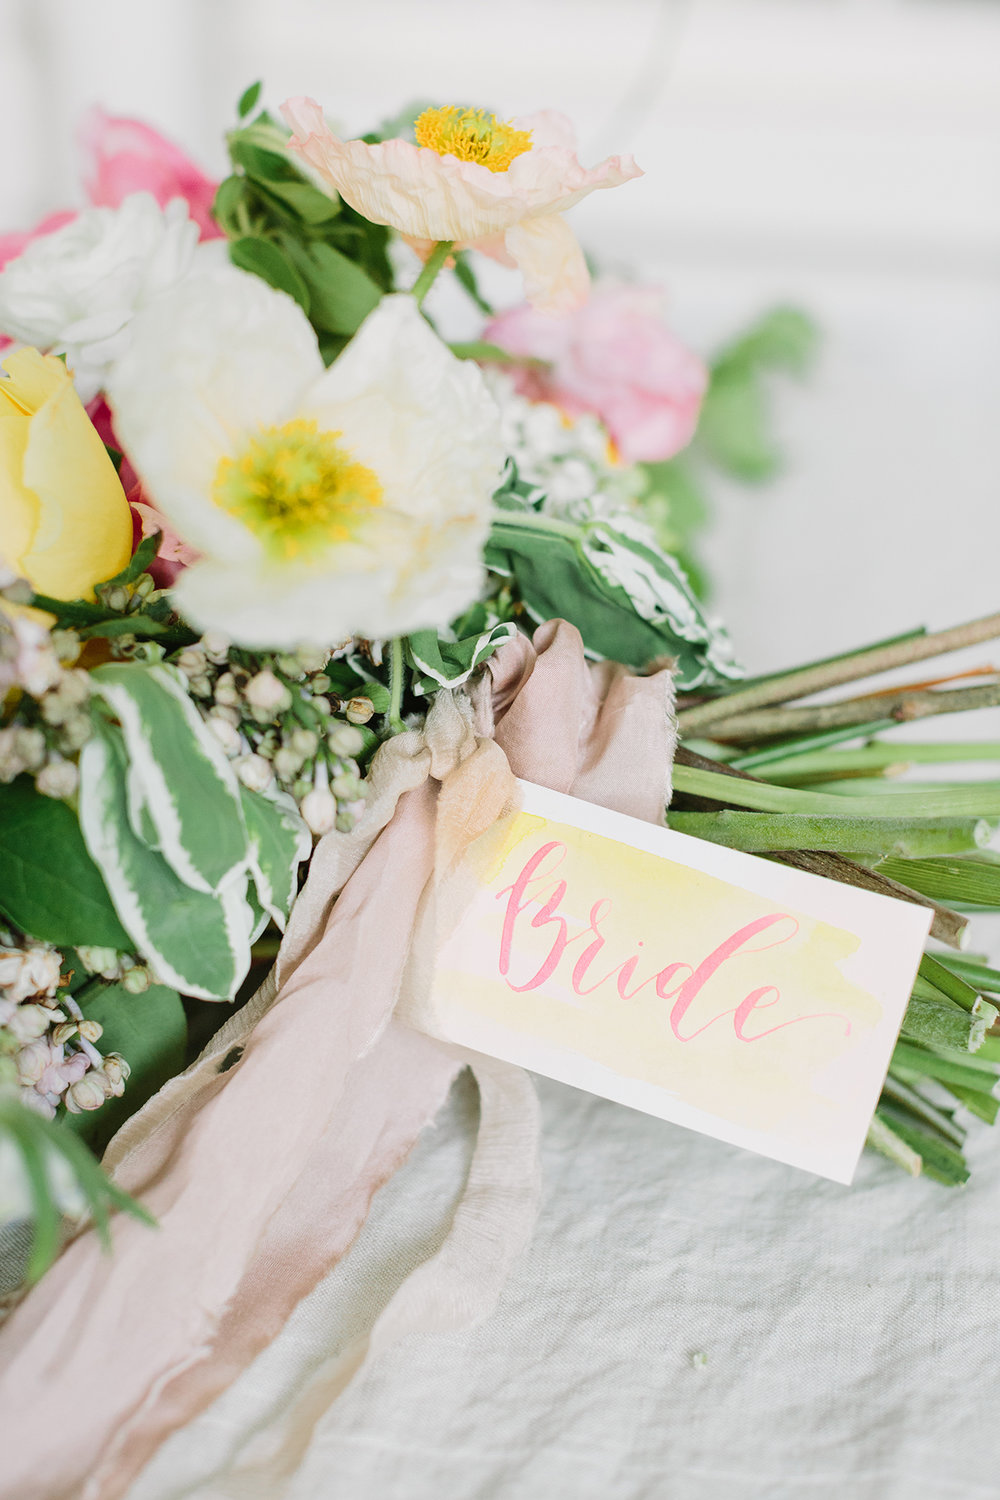 Watercolor place card details with pink calligraphy